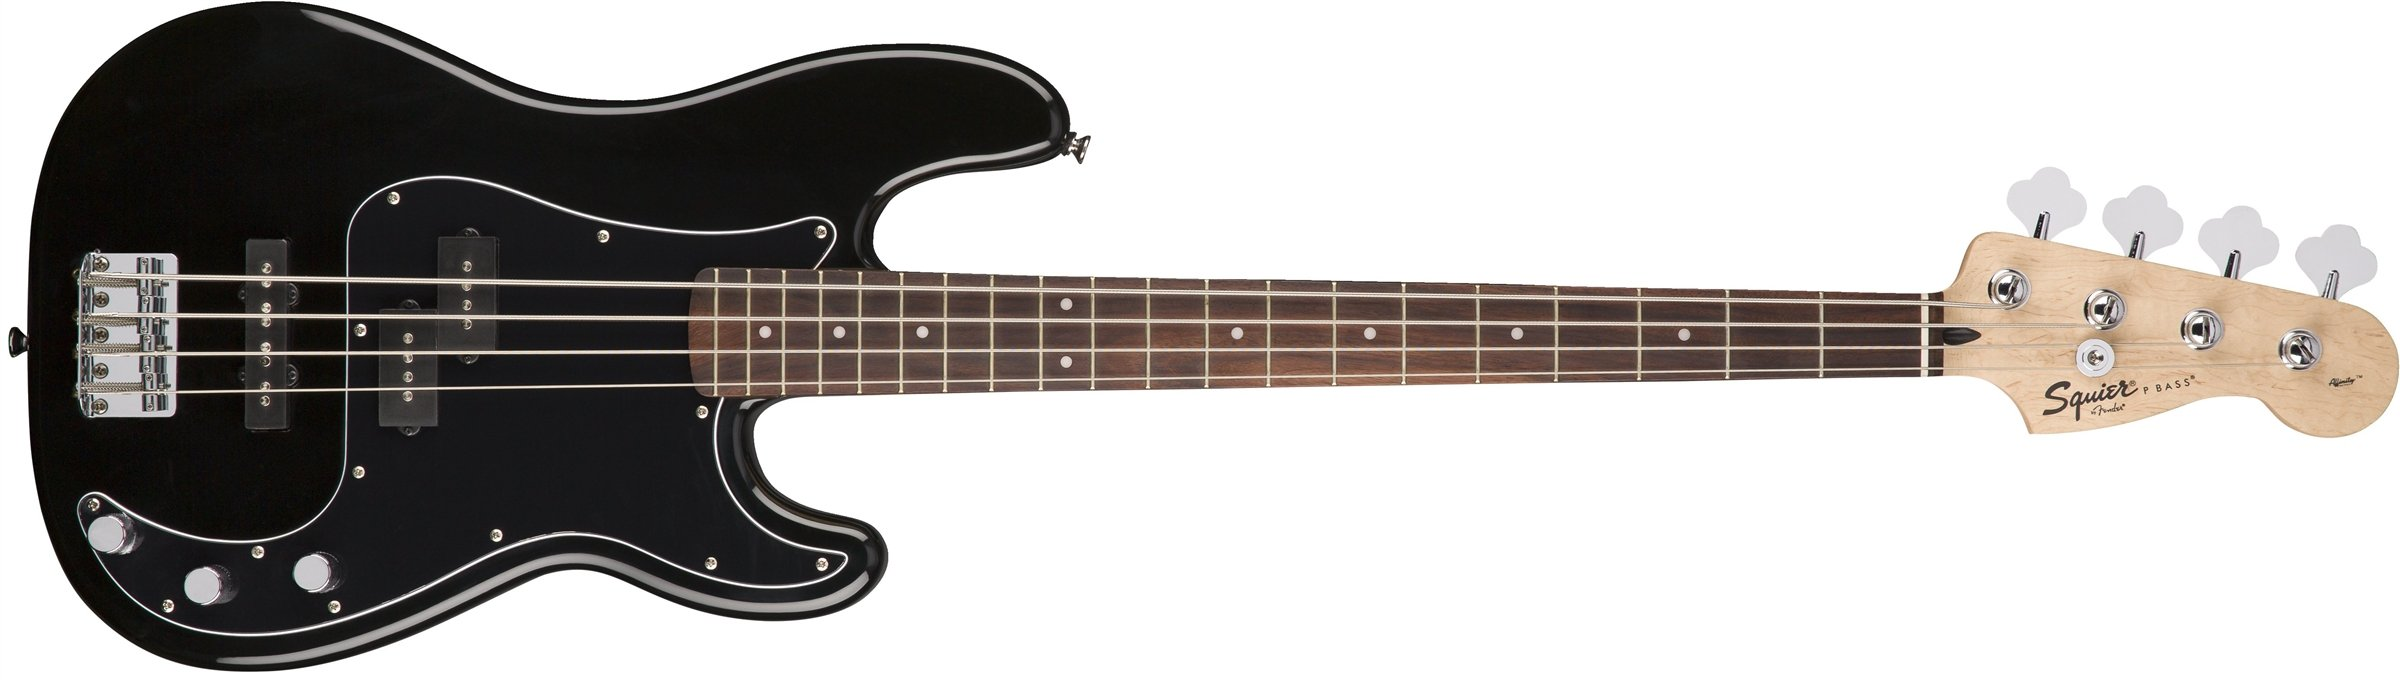 Squier by Fender Affinity Series Precision Bass PJ Beginner Pack, Laurel Fingerboard, Black, with Gig Bag, Rumble 15 Amp, Strap, Cable, and Fender Play by Fender (Image #3)